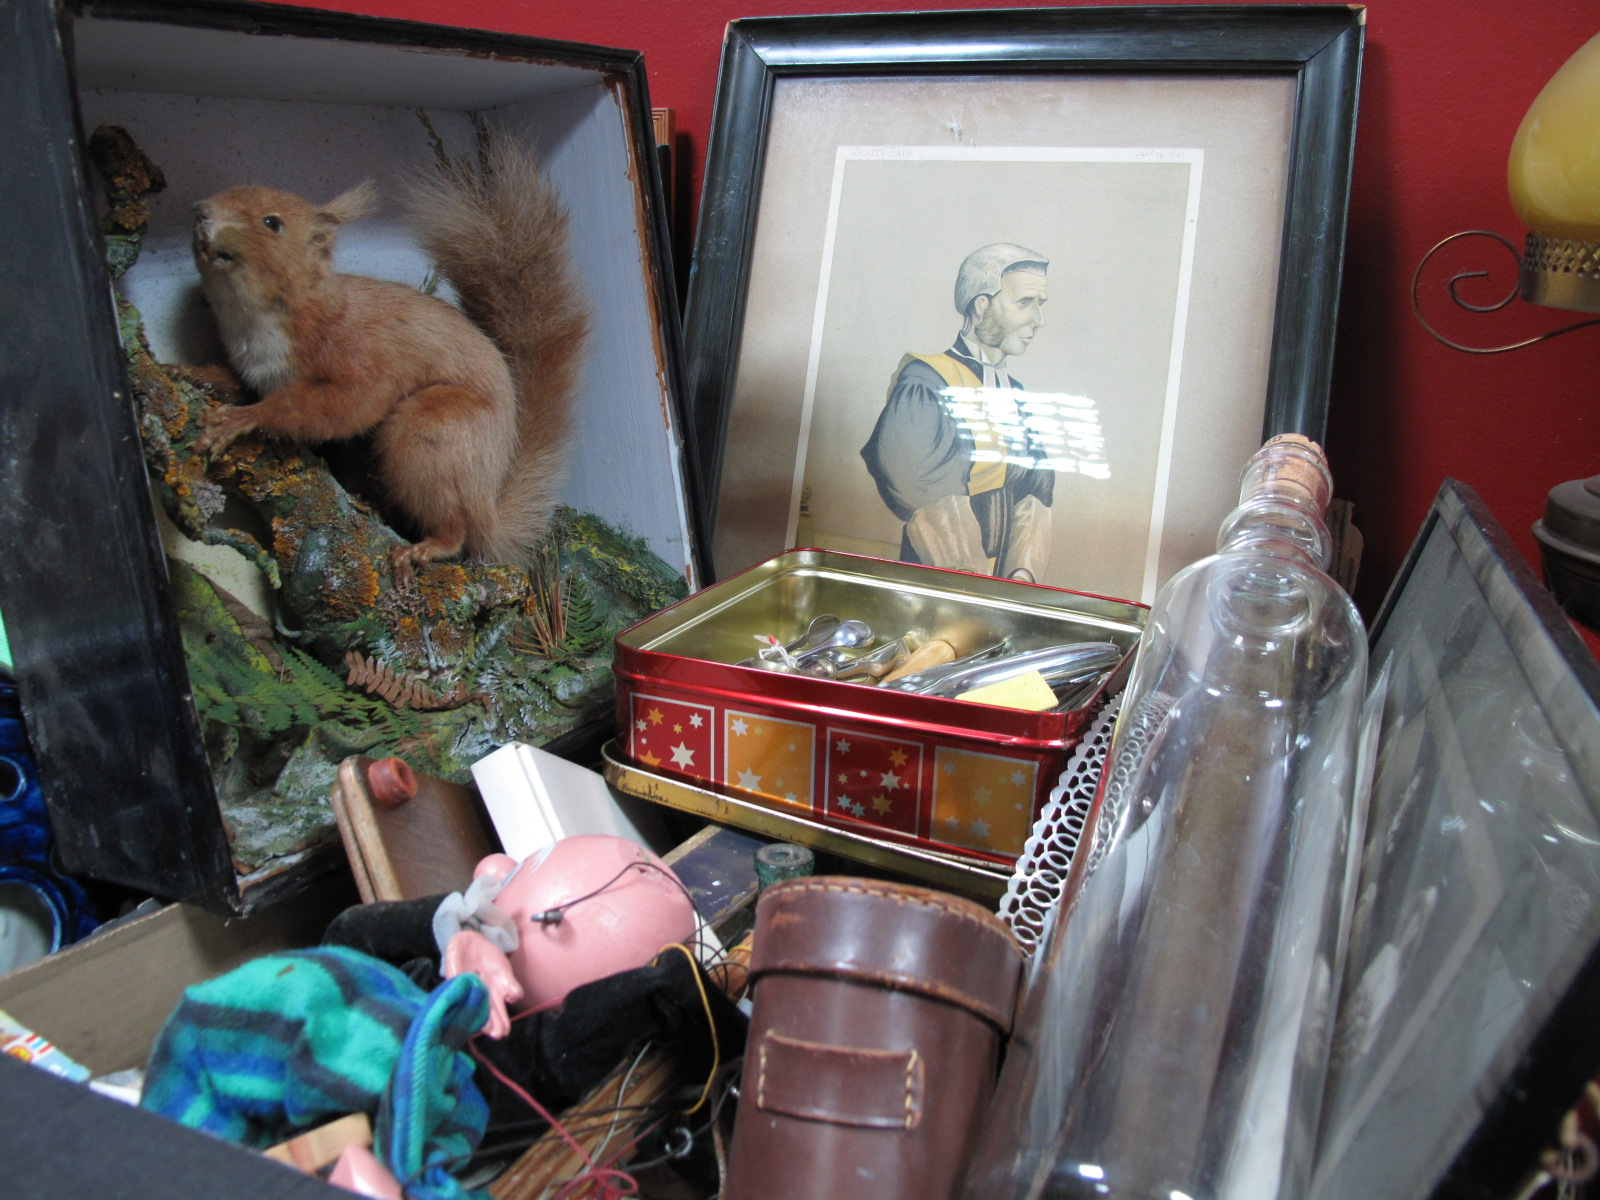 Lot 1002 - A Taxidermy Squirrel, glass rolling pin, garden syringe, quiz print, Pelham puppet, tie press,